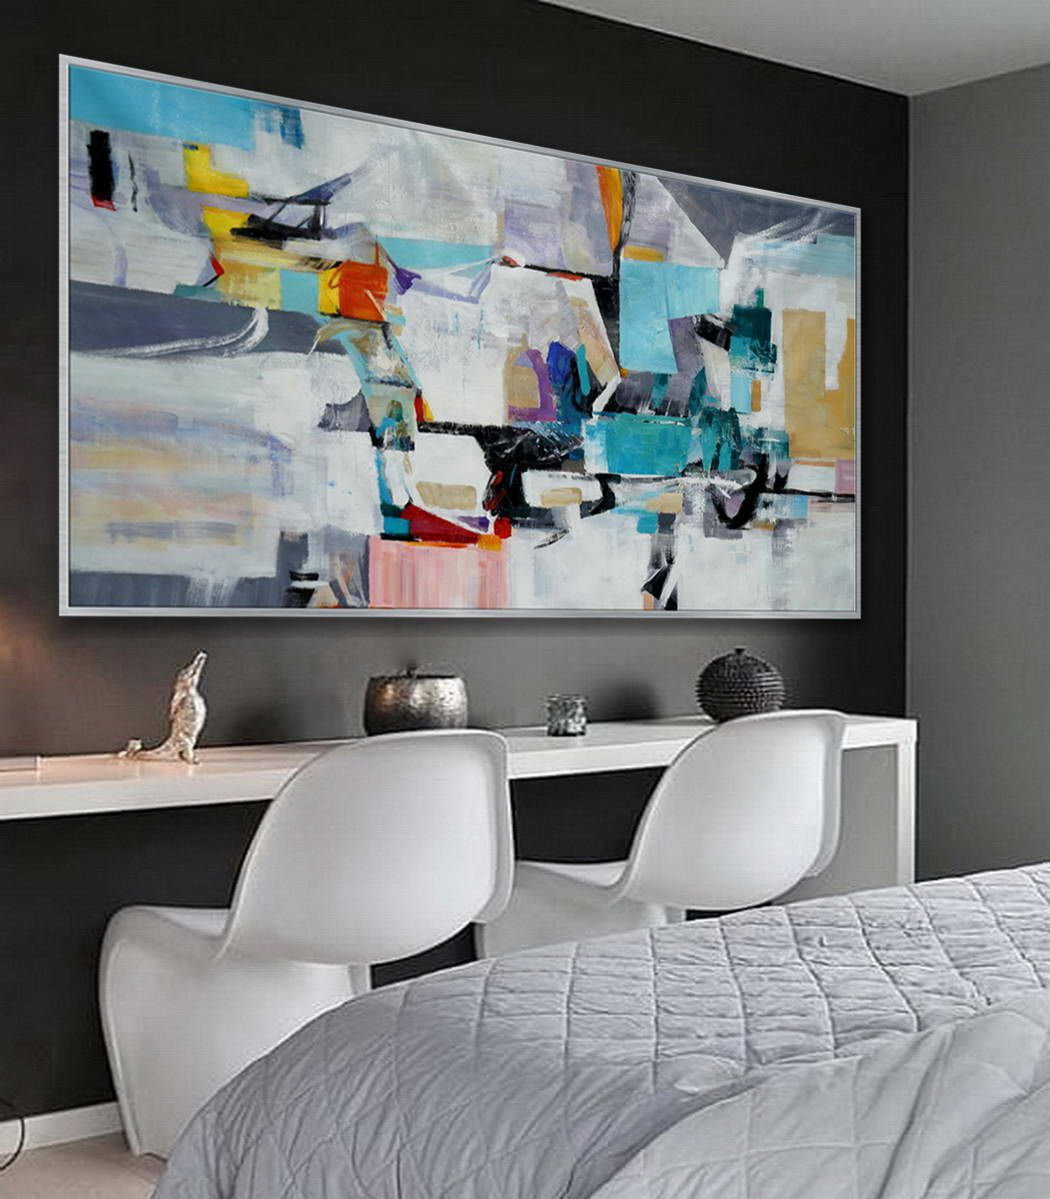 Modern Contemporary Artwork Large Colorful Horizontal Panoramic Abstract Framed Wall Art Brush Strokes Acrylic Painting On Canvas 36 X 72 Wall Art Pictures Fine Art Painting Painting